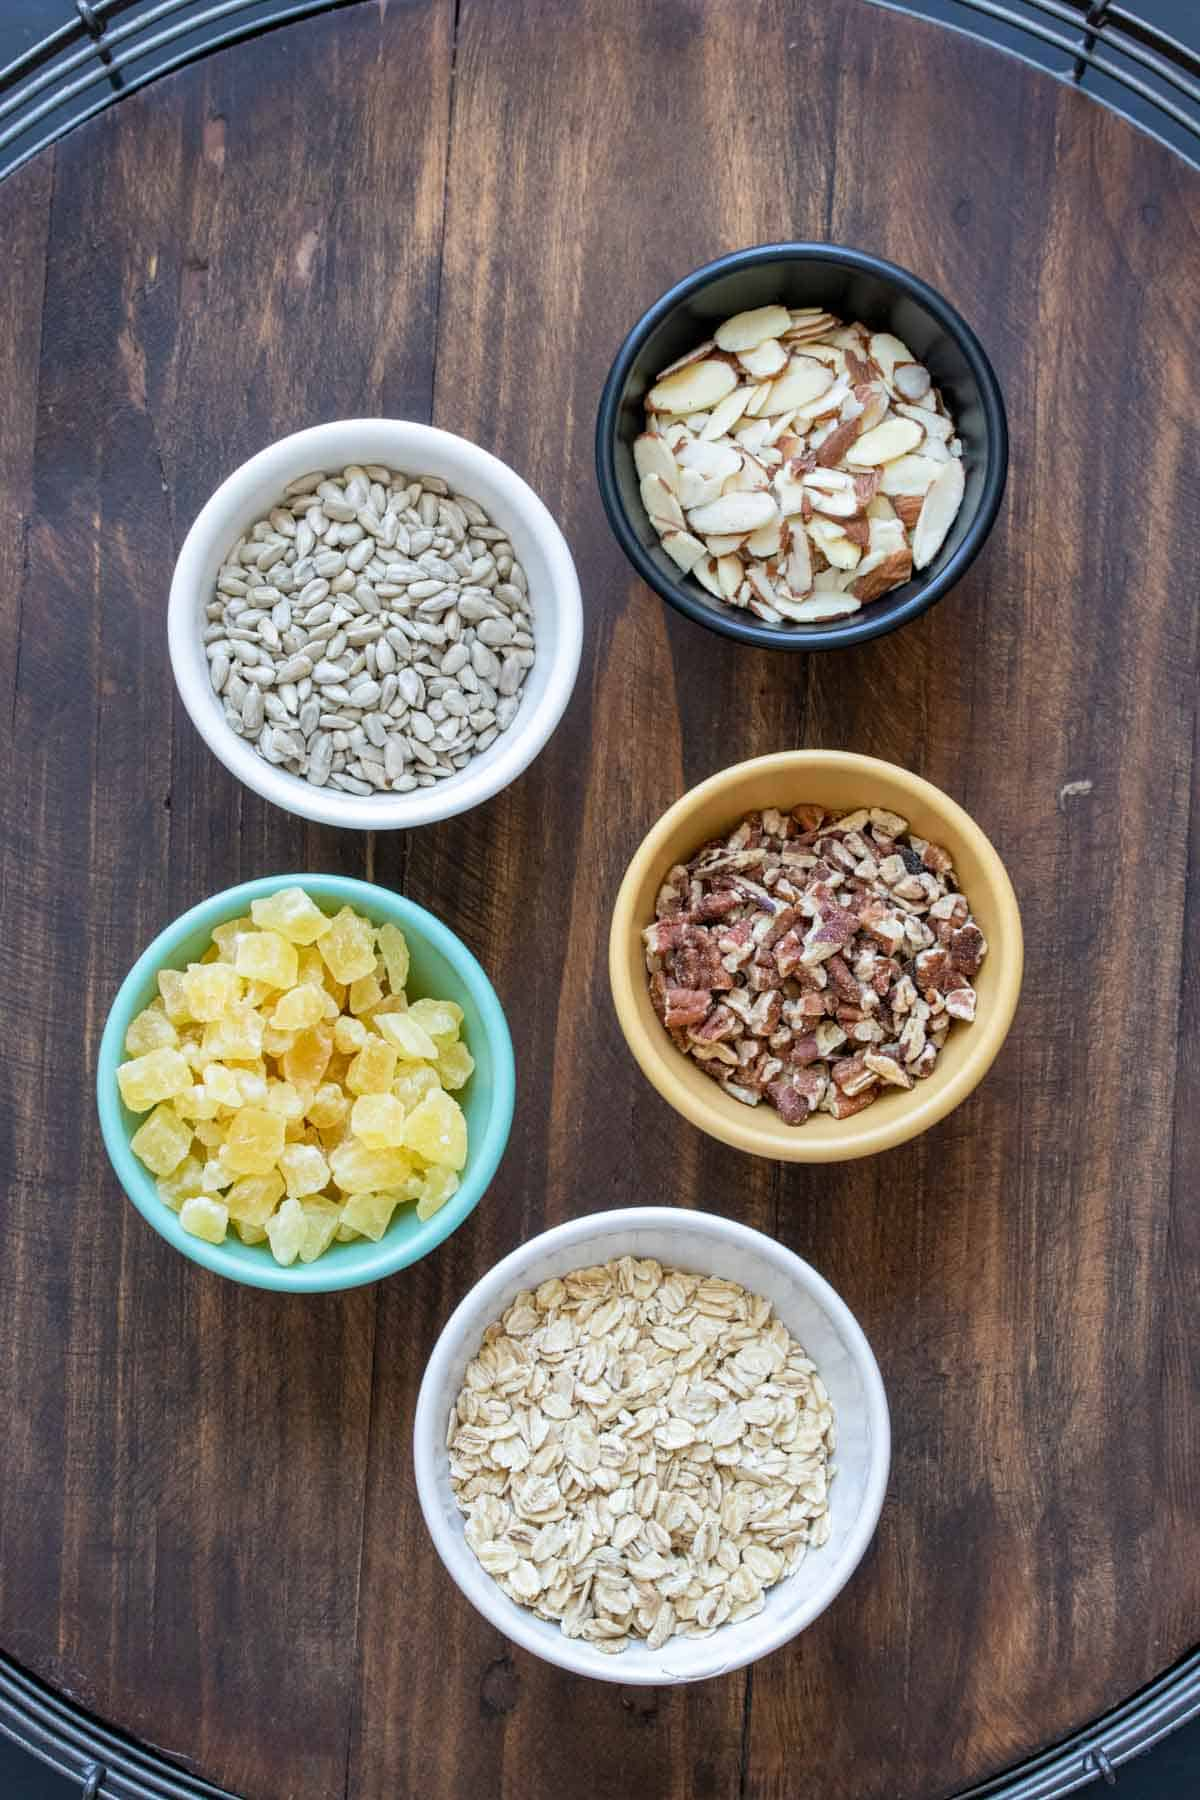 Different color bowls filled with ingredients to make homemade granola